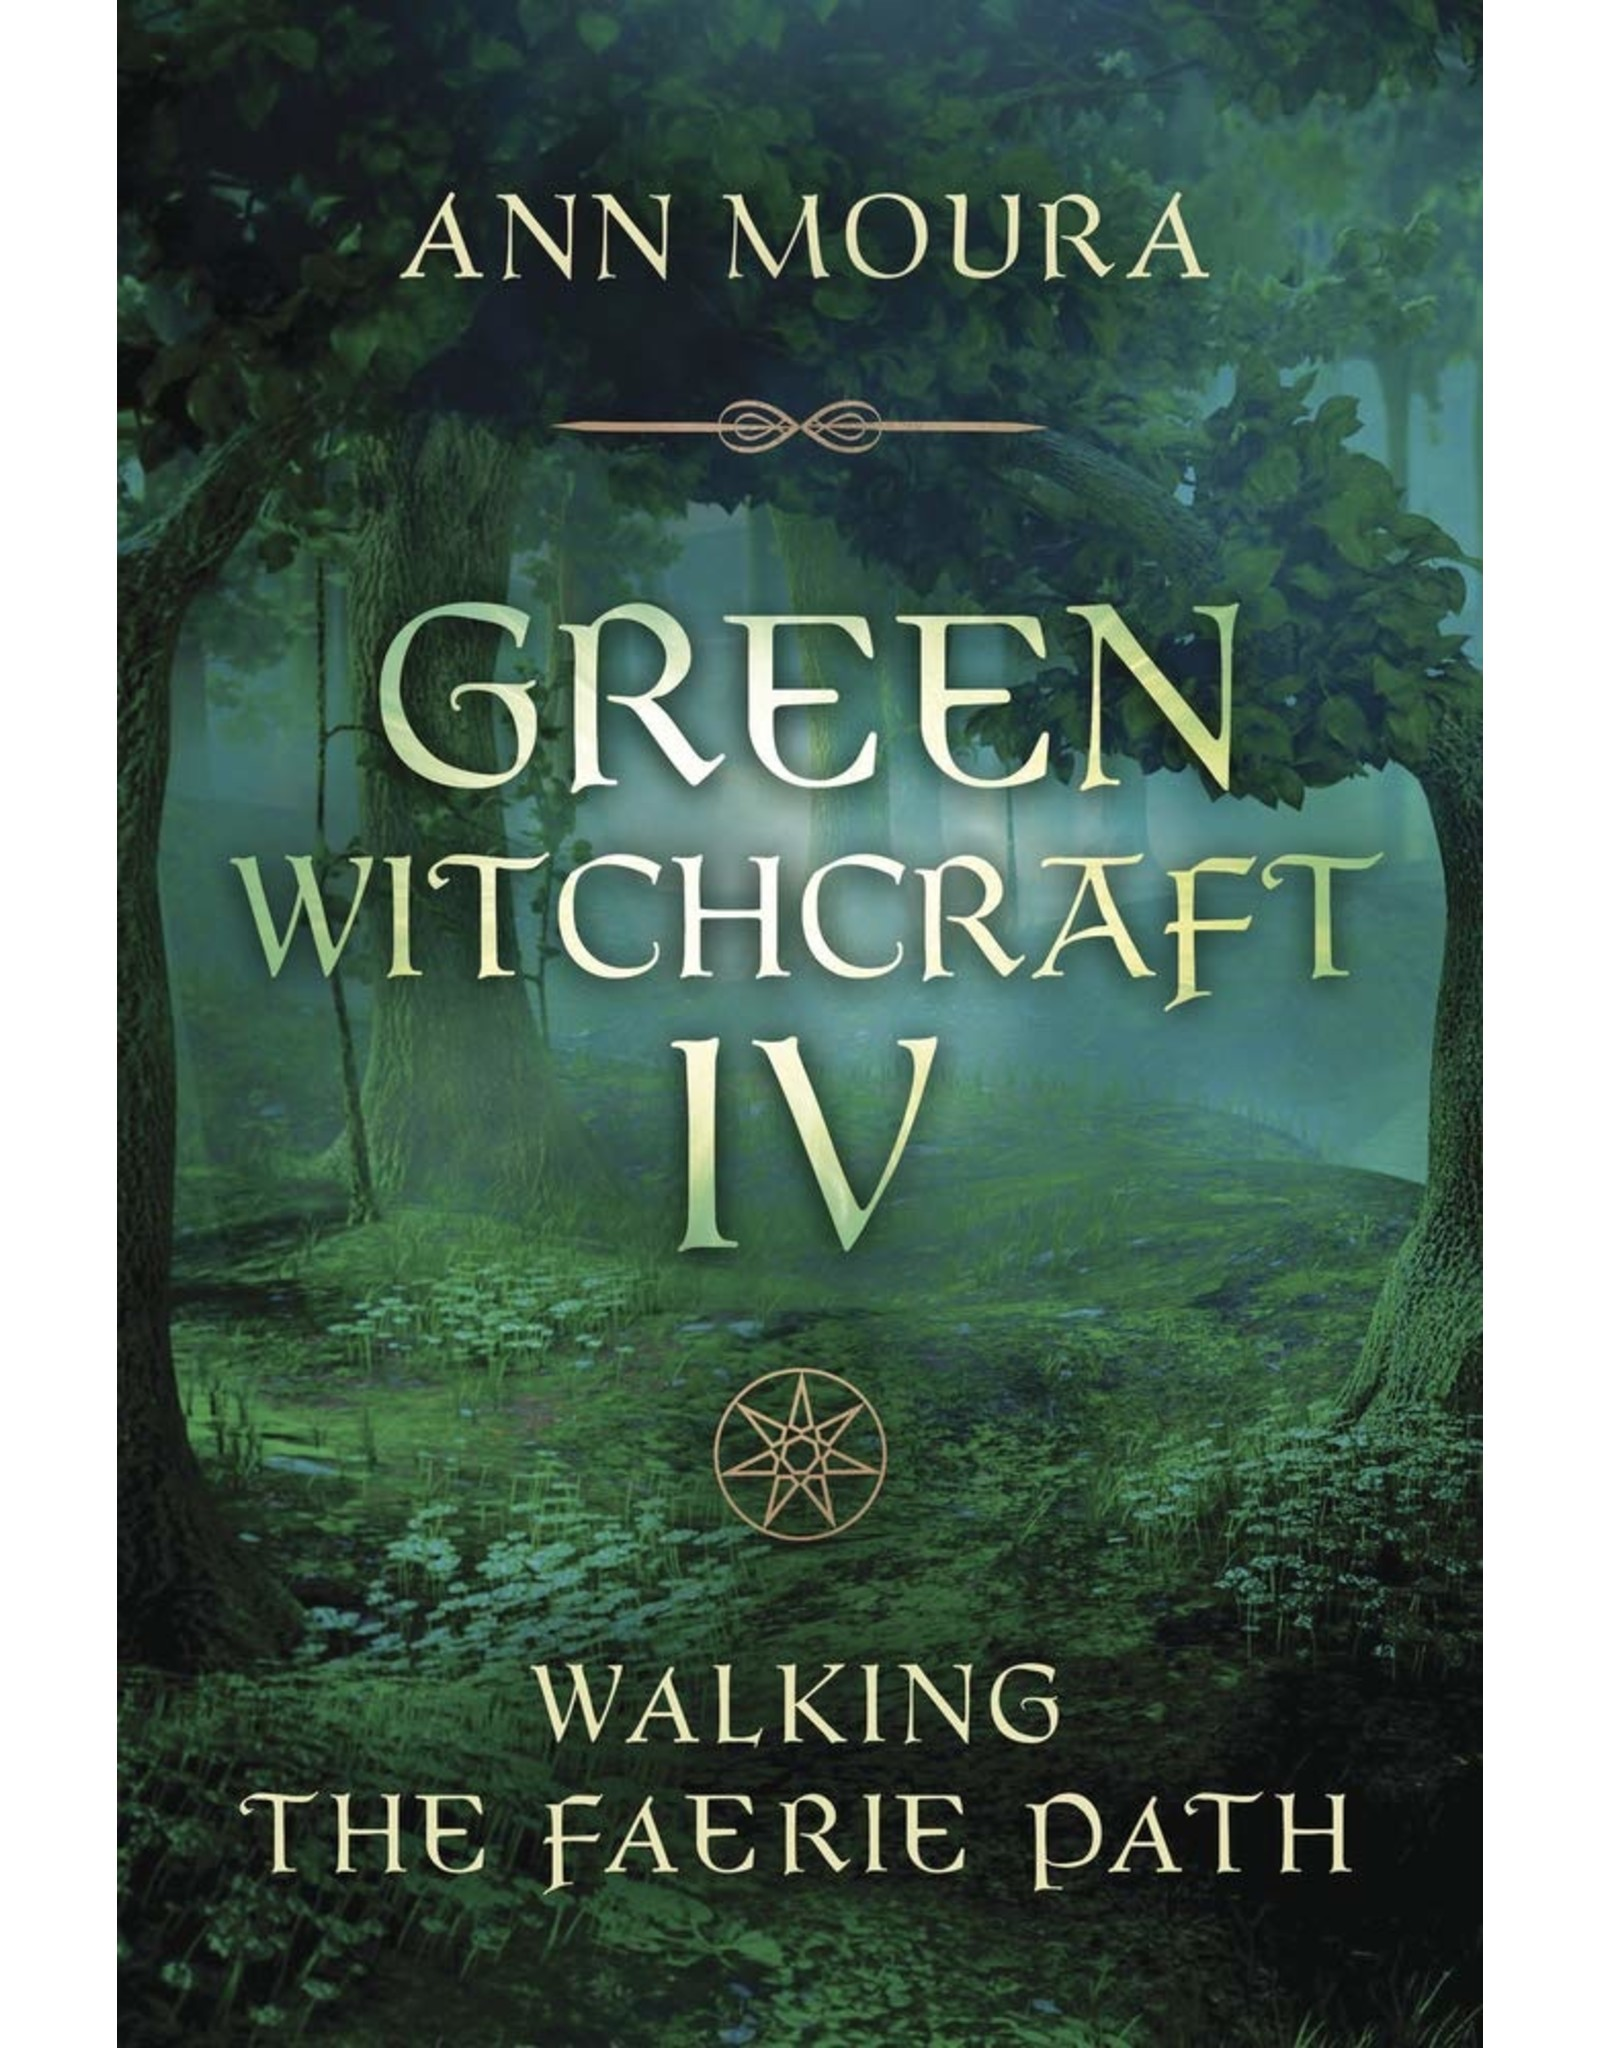 Green Witchcraft IV